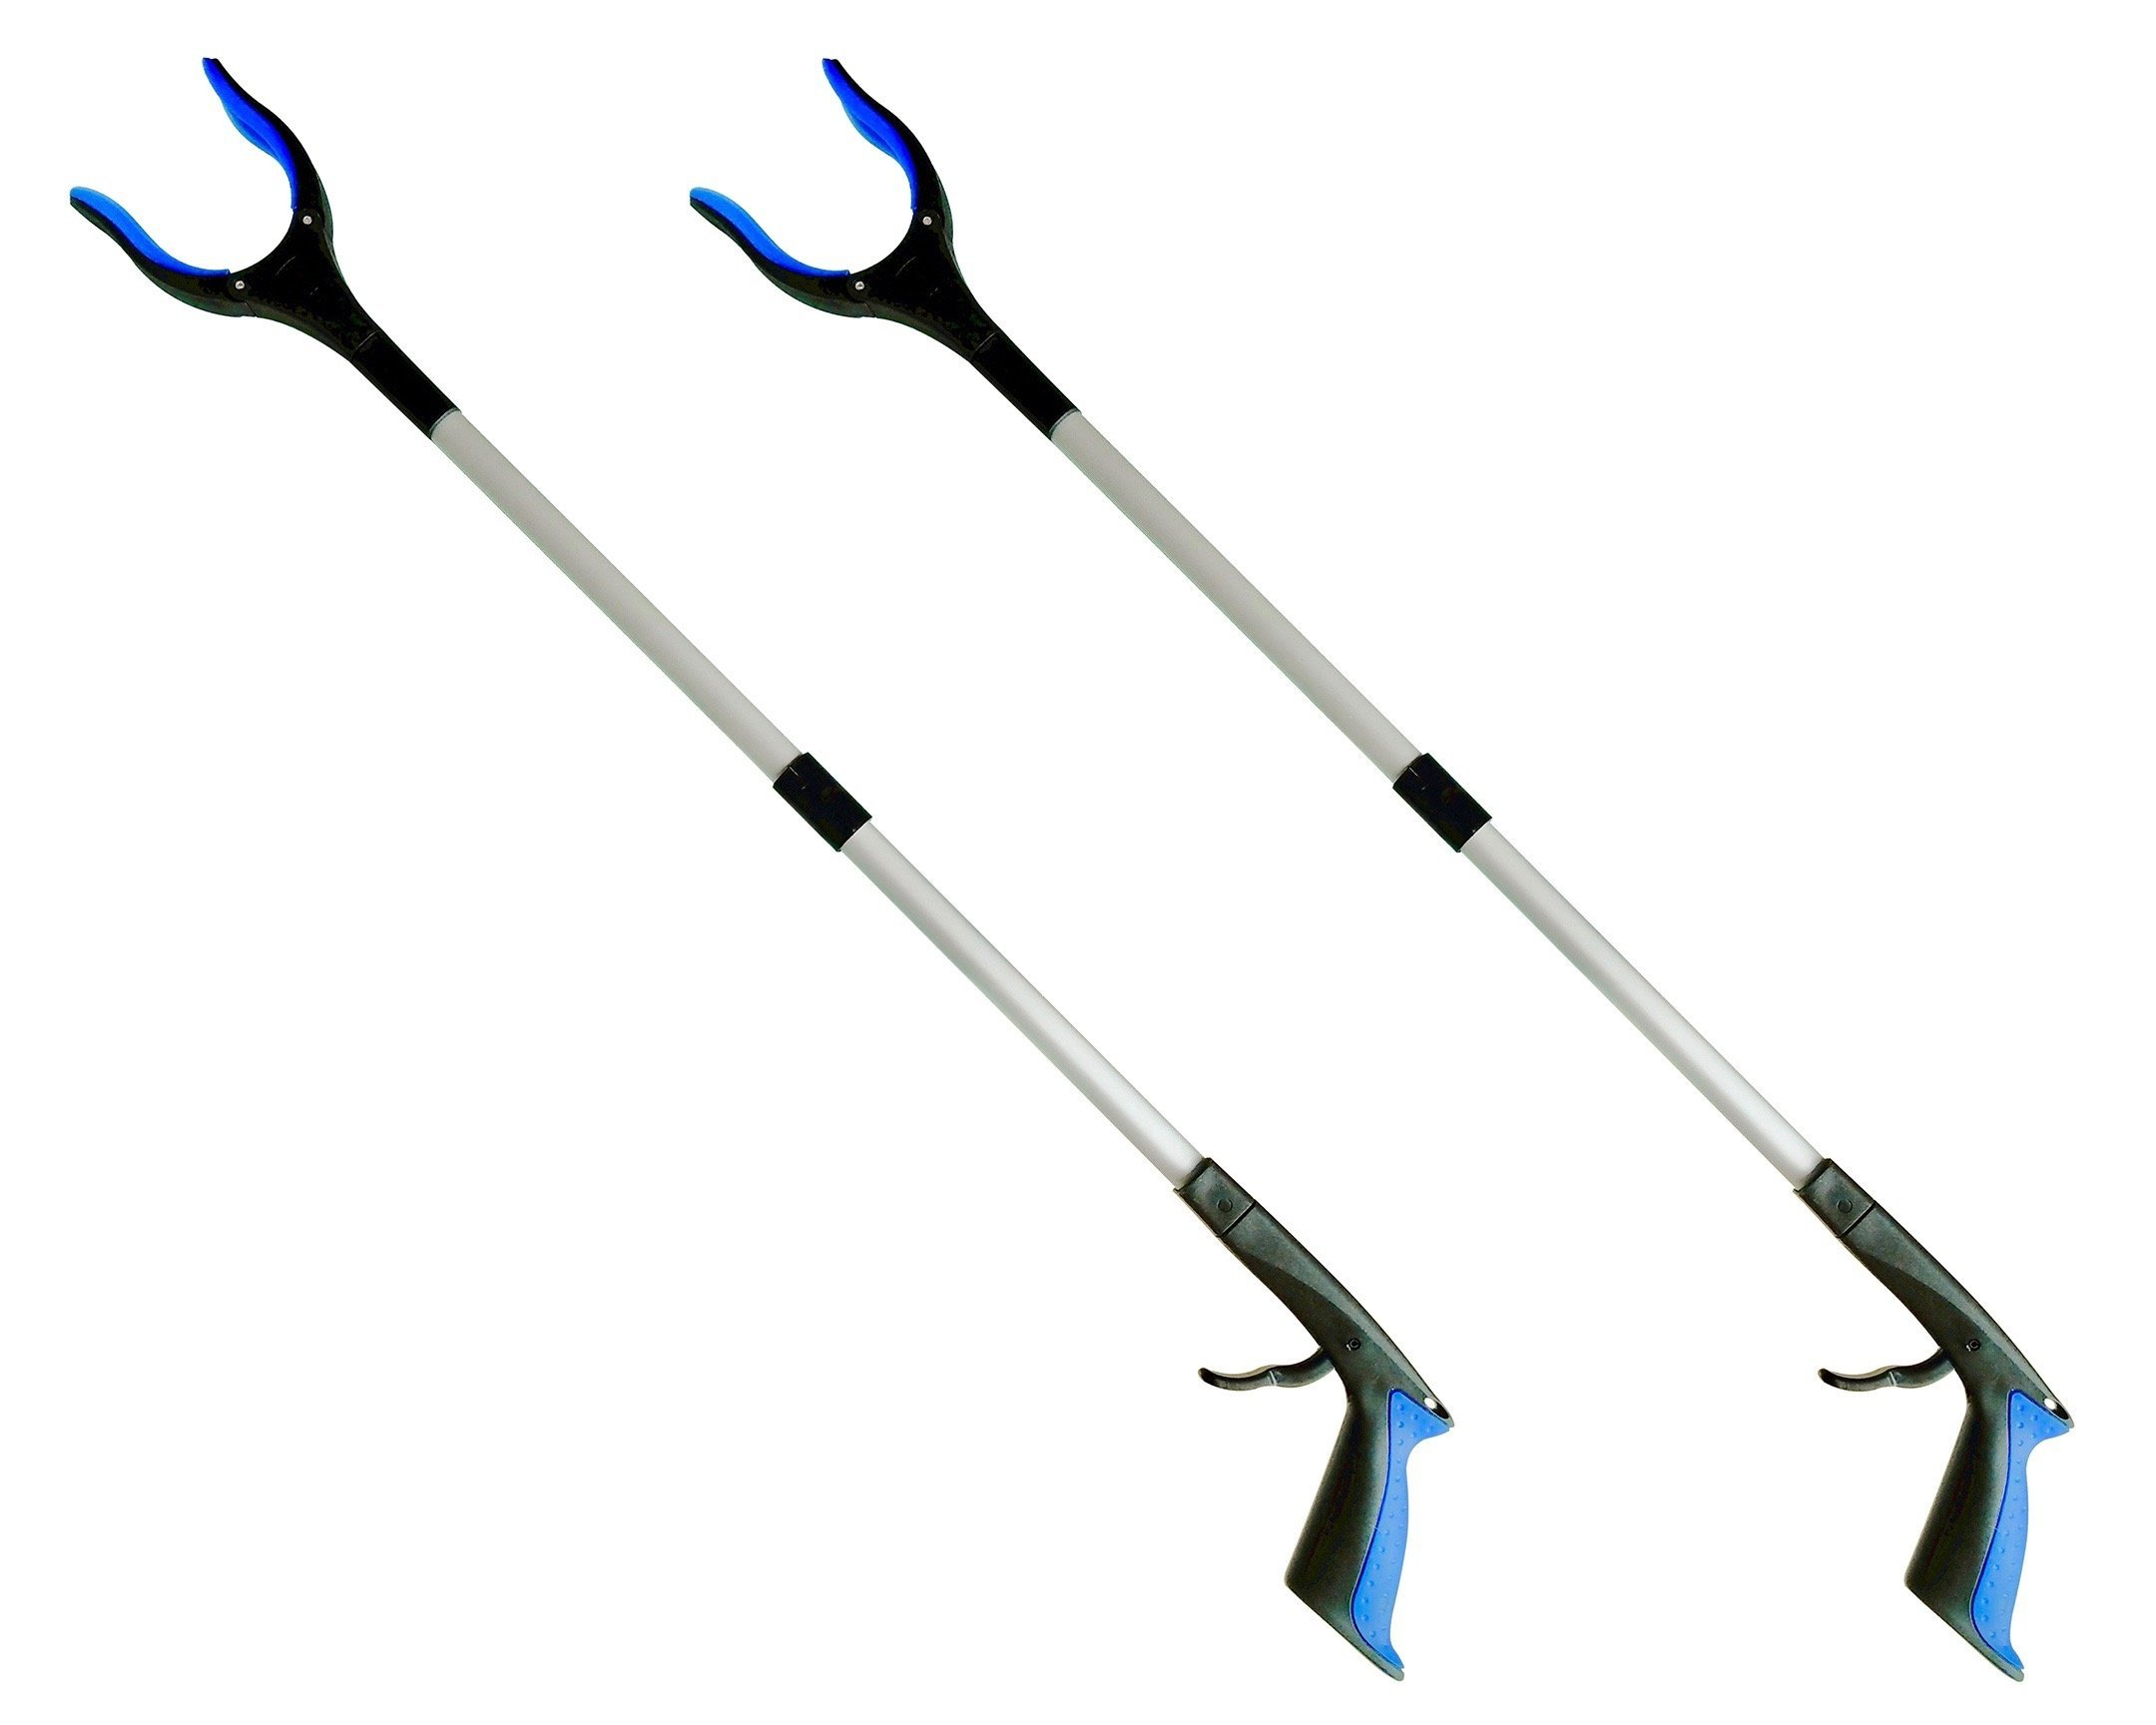 2-Pack ThingWx Pro Foldable Reacher Grabber with Rotating Grip - 34'' Long Aluminum Alloy Lightweight and Durable Reaching Aid Tool